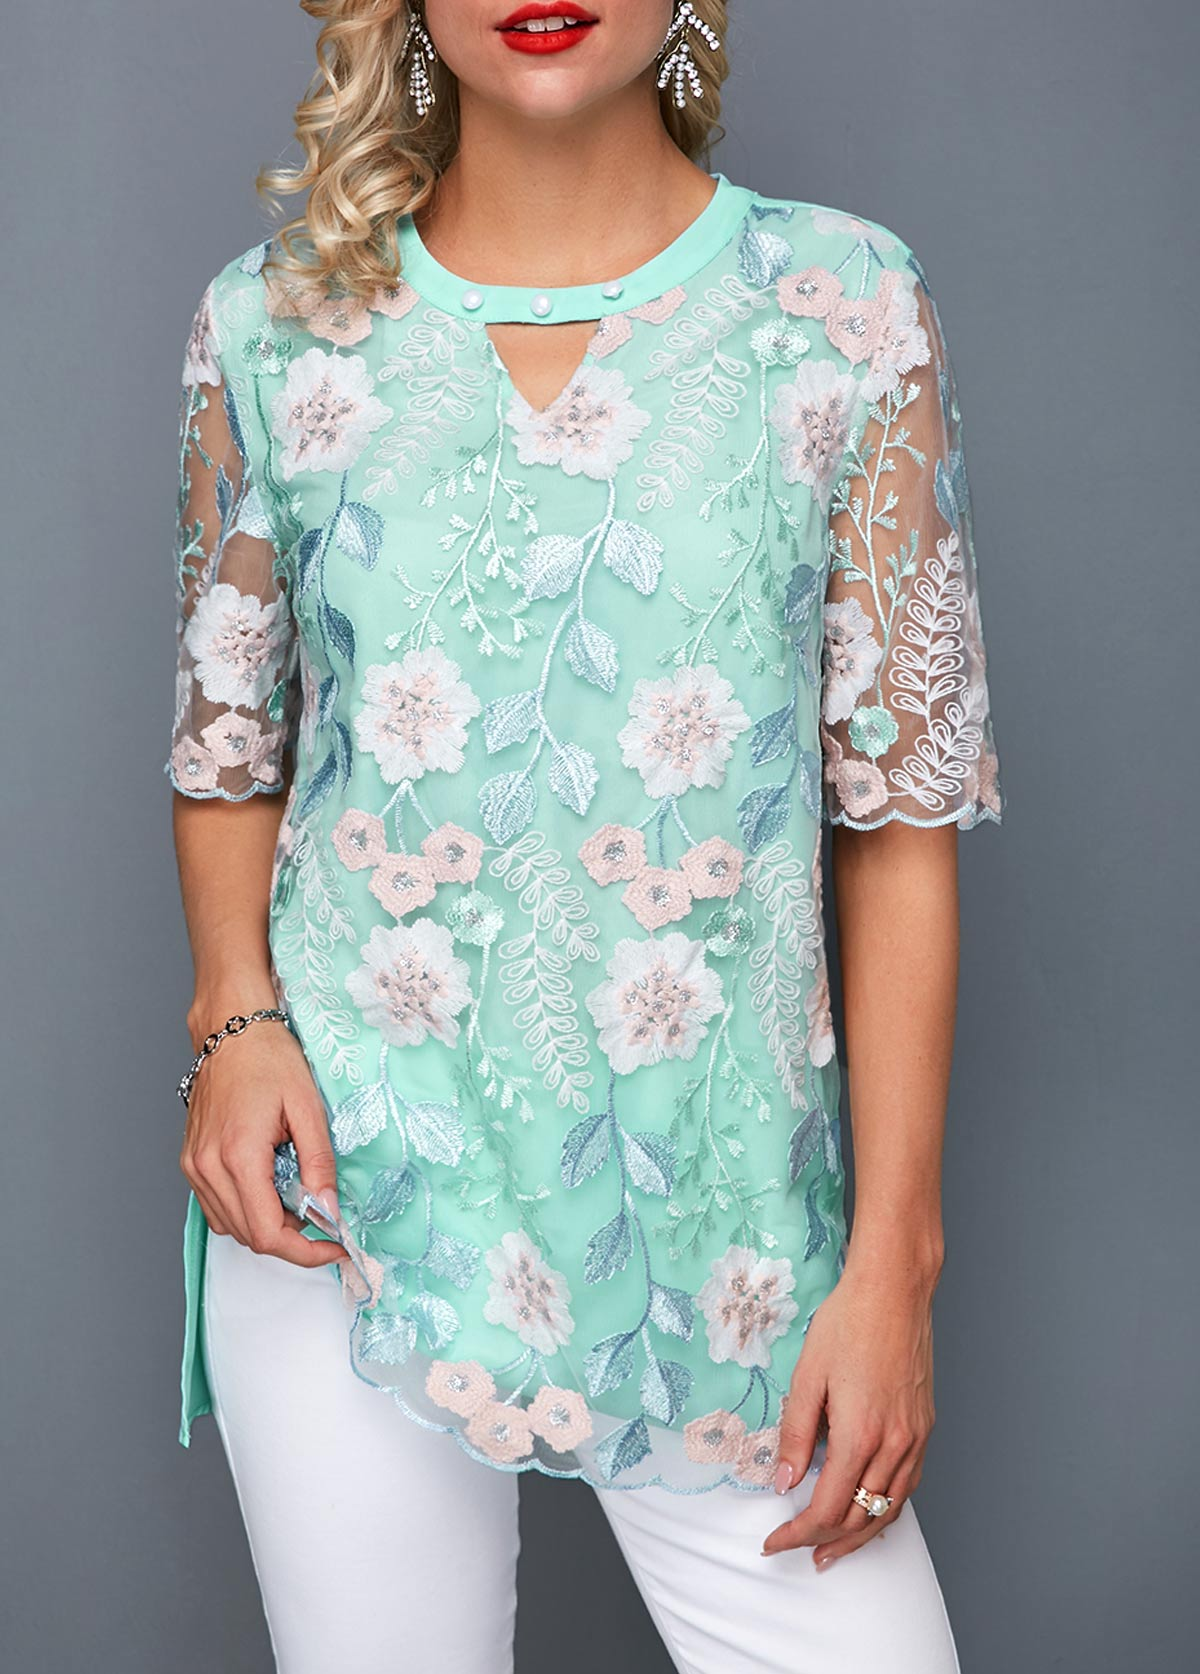 Keyhole Neckline Faux Pearl Embellished Embroidered Blouse